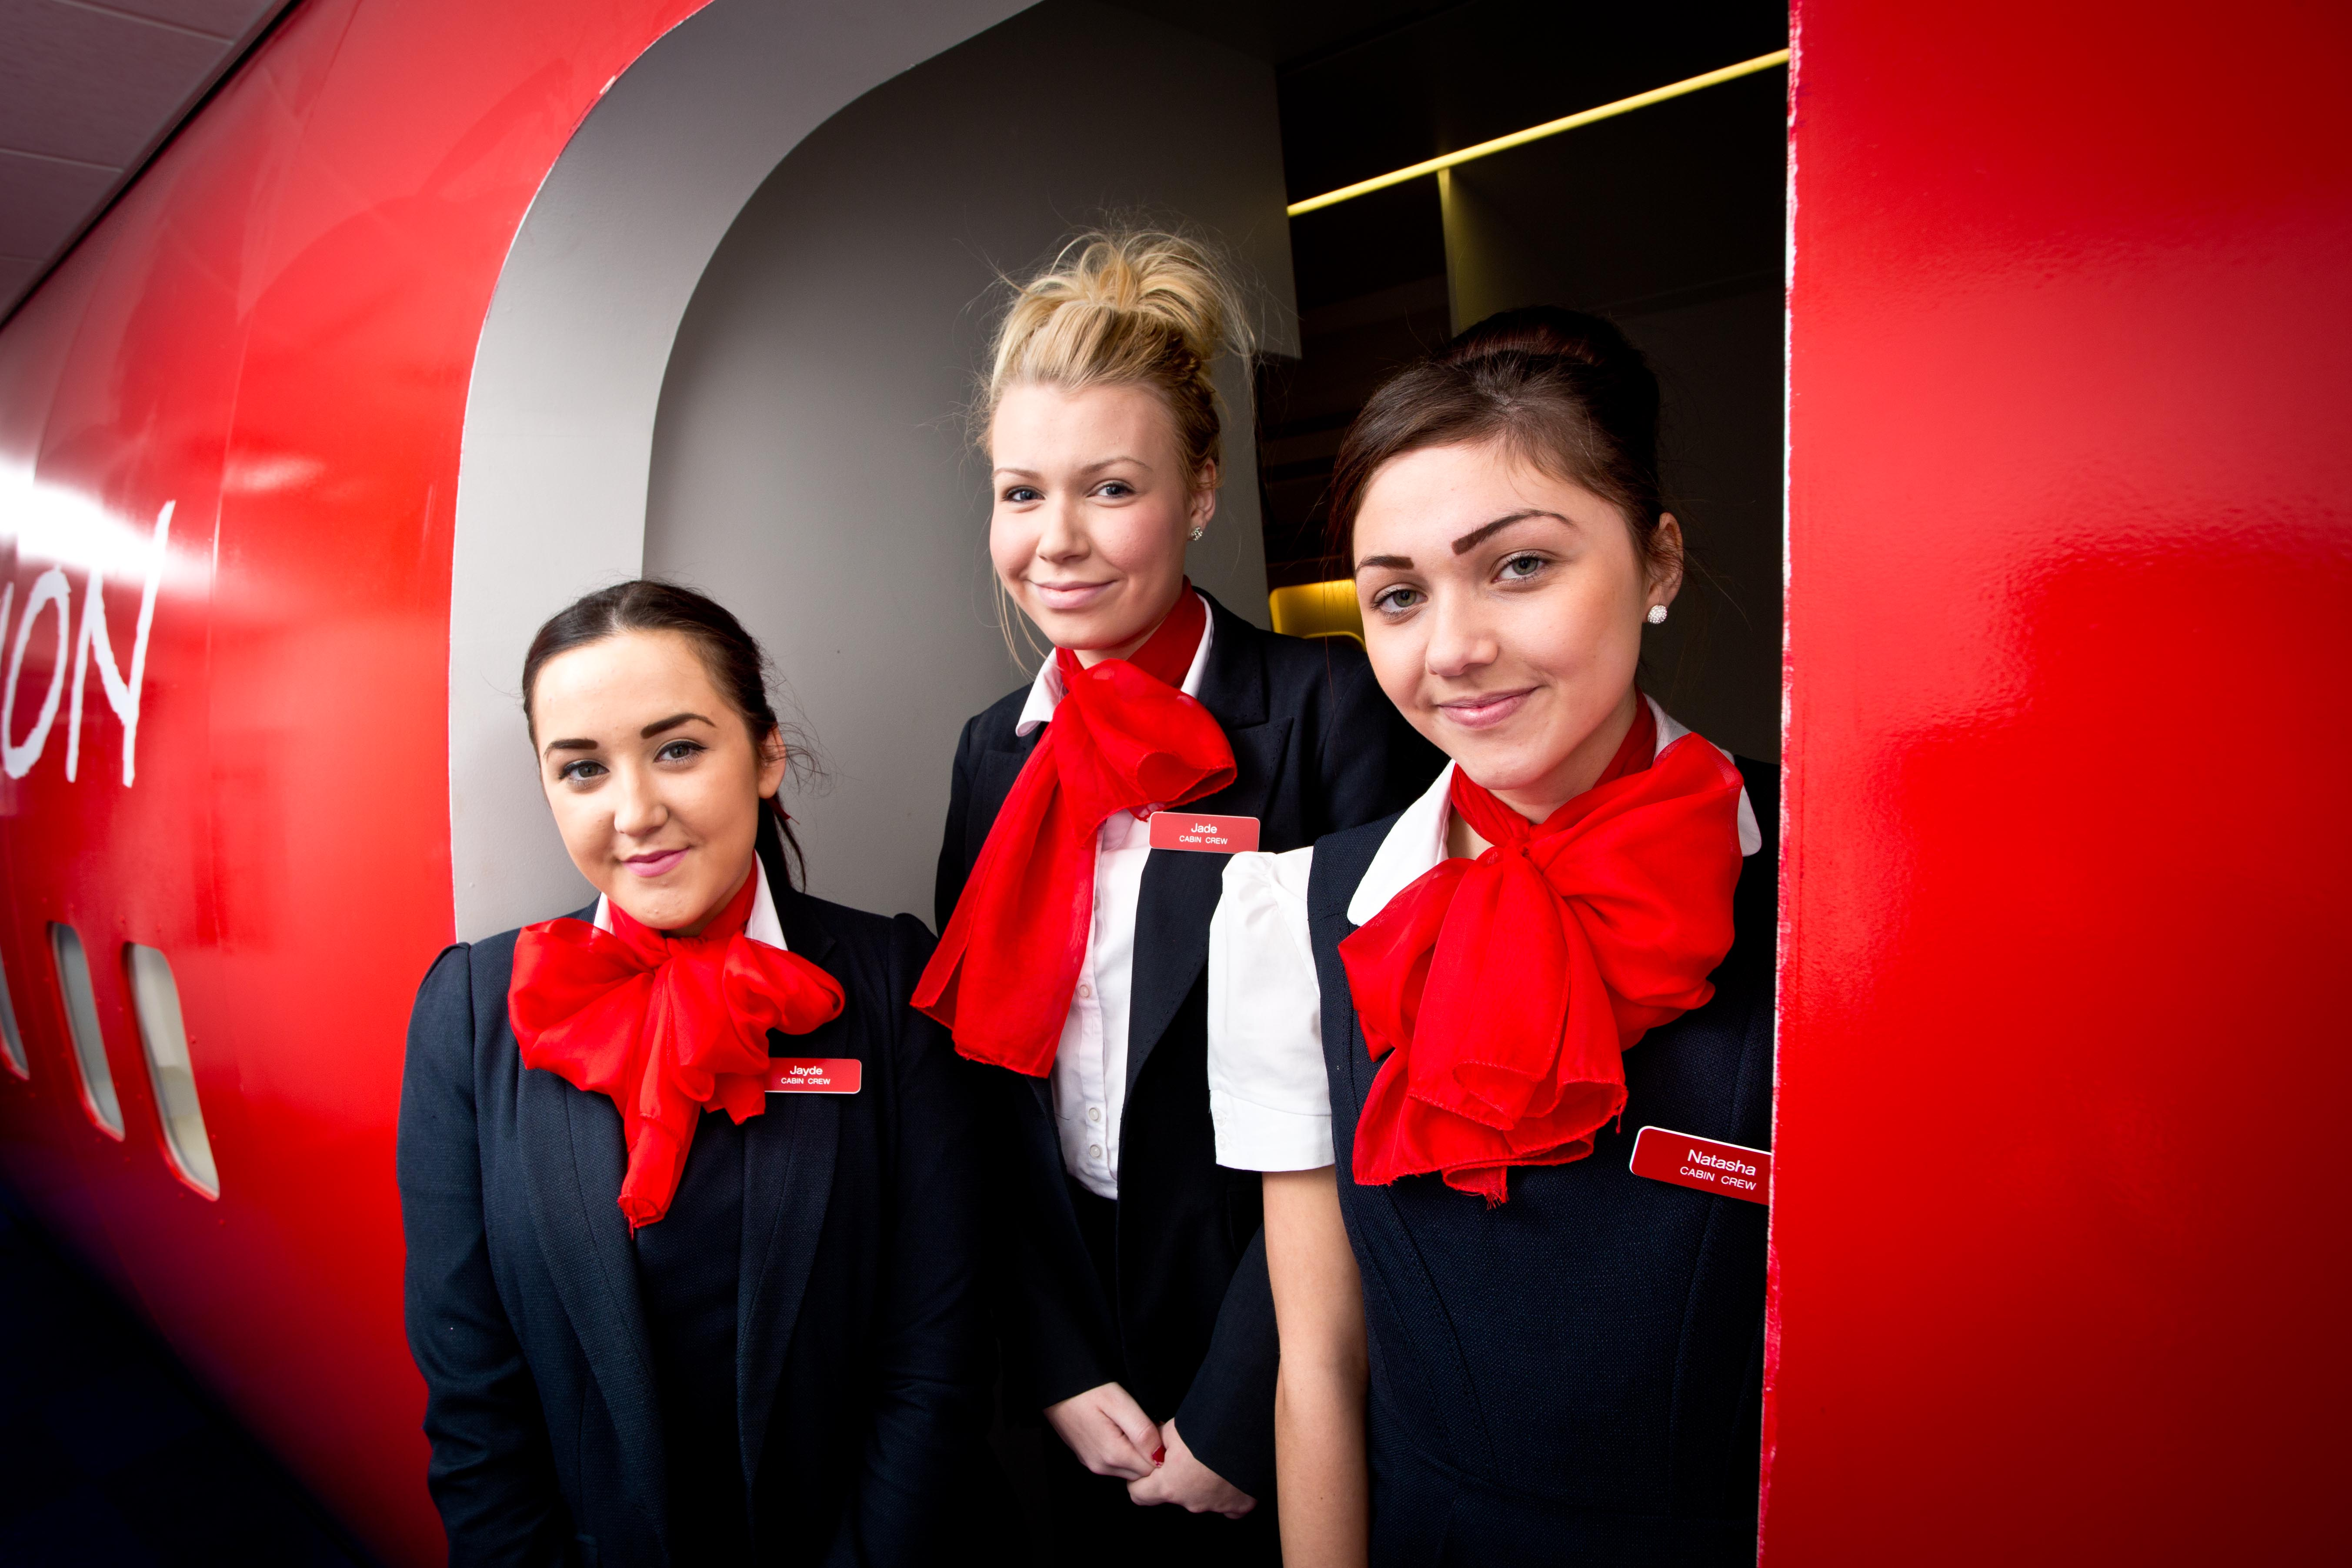 cabin-crew-and-airport-operations_27058519576_o.jpg